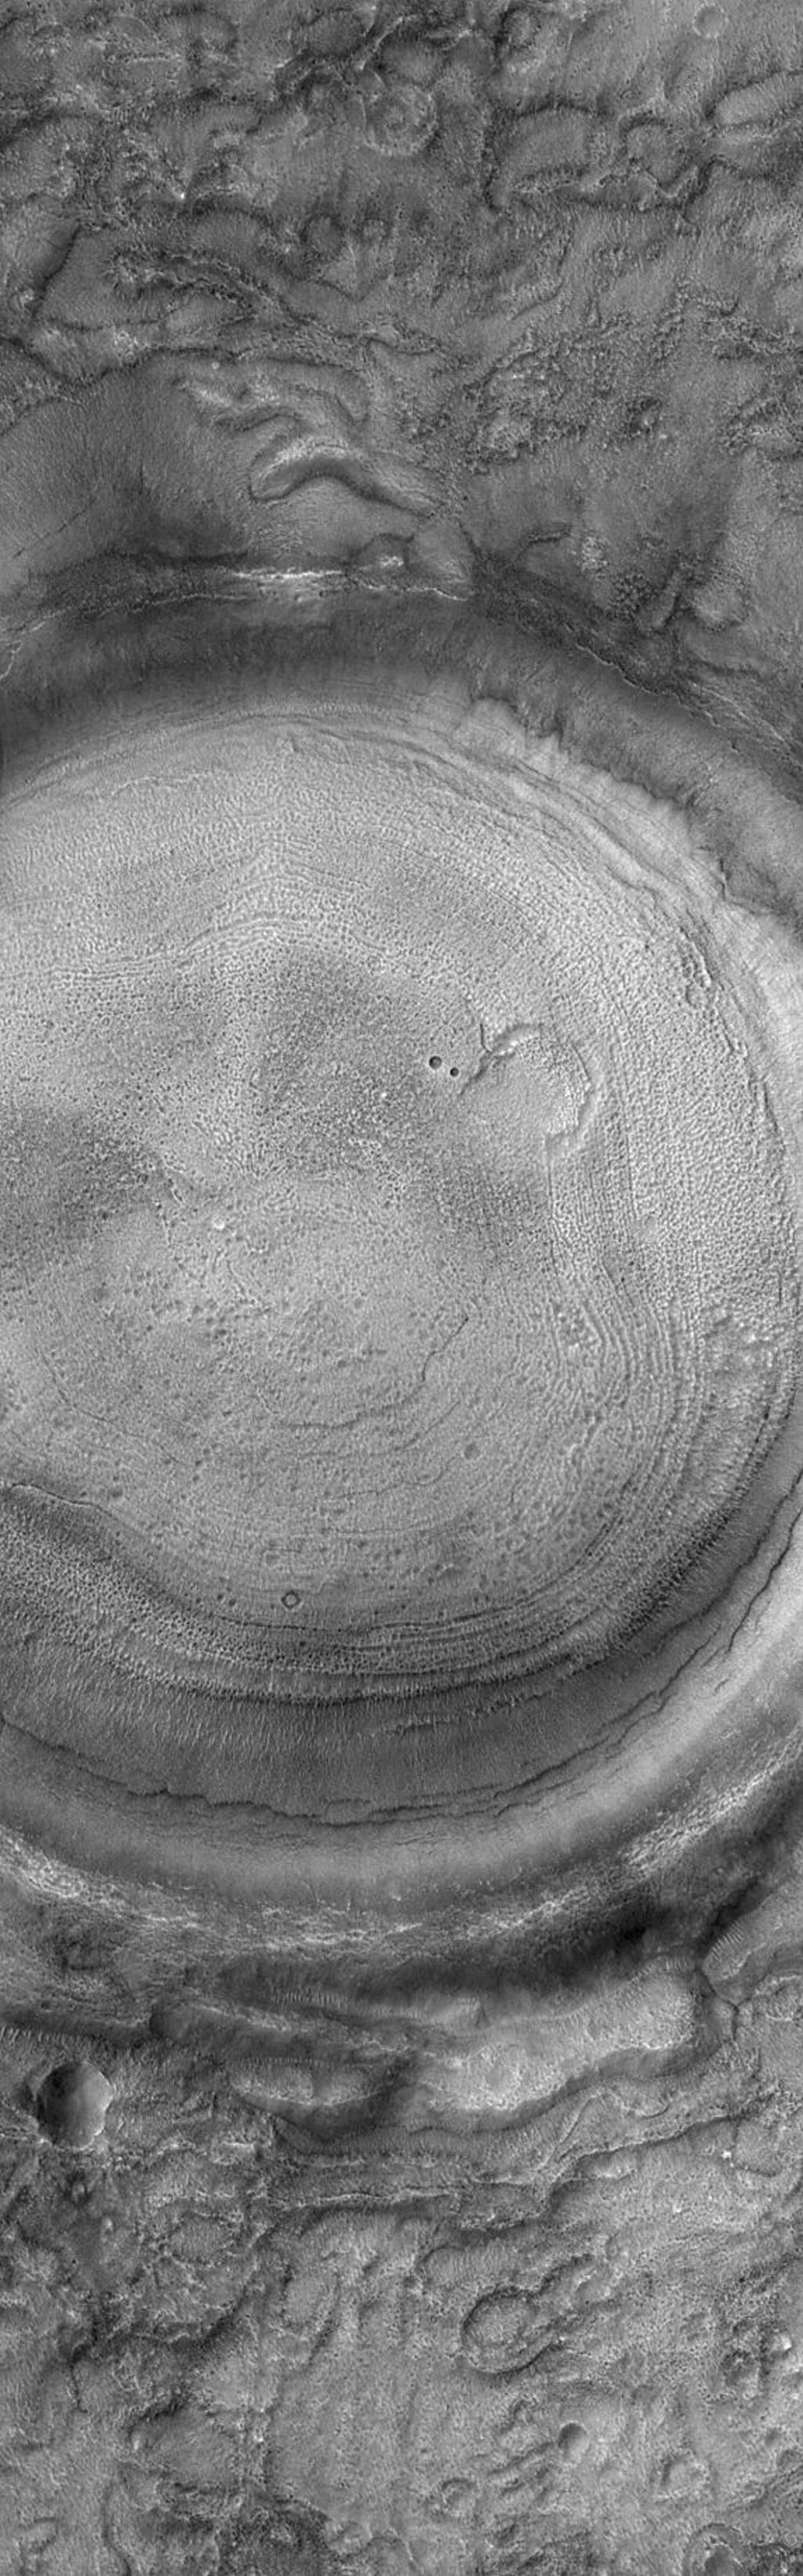 This Mars Global Surveyor (MGS) Mars Orbiter Camera (MOC) image shows the interior of a typical crater in northern Acidalia Planitia. The floor is covered by material that forms an almost concentric pattern. In this case, the semi-concentric rings might be an expression of eroded layered material, although this interpretation is uncertain. The crater is located near 44.0°N, 27.7°W, and covers an area about 3 km (1.9 mi) wide. Sunlight illuminates the scene from the lower left.